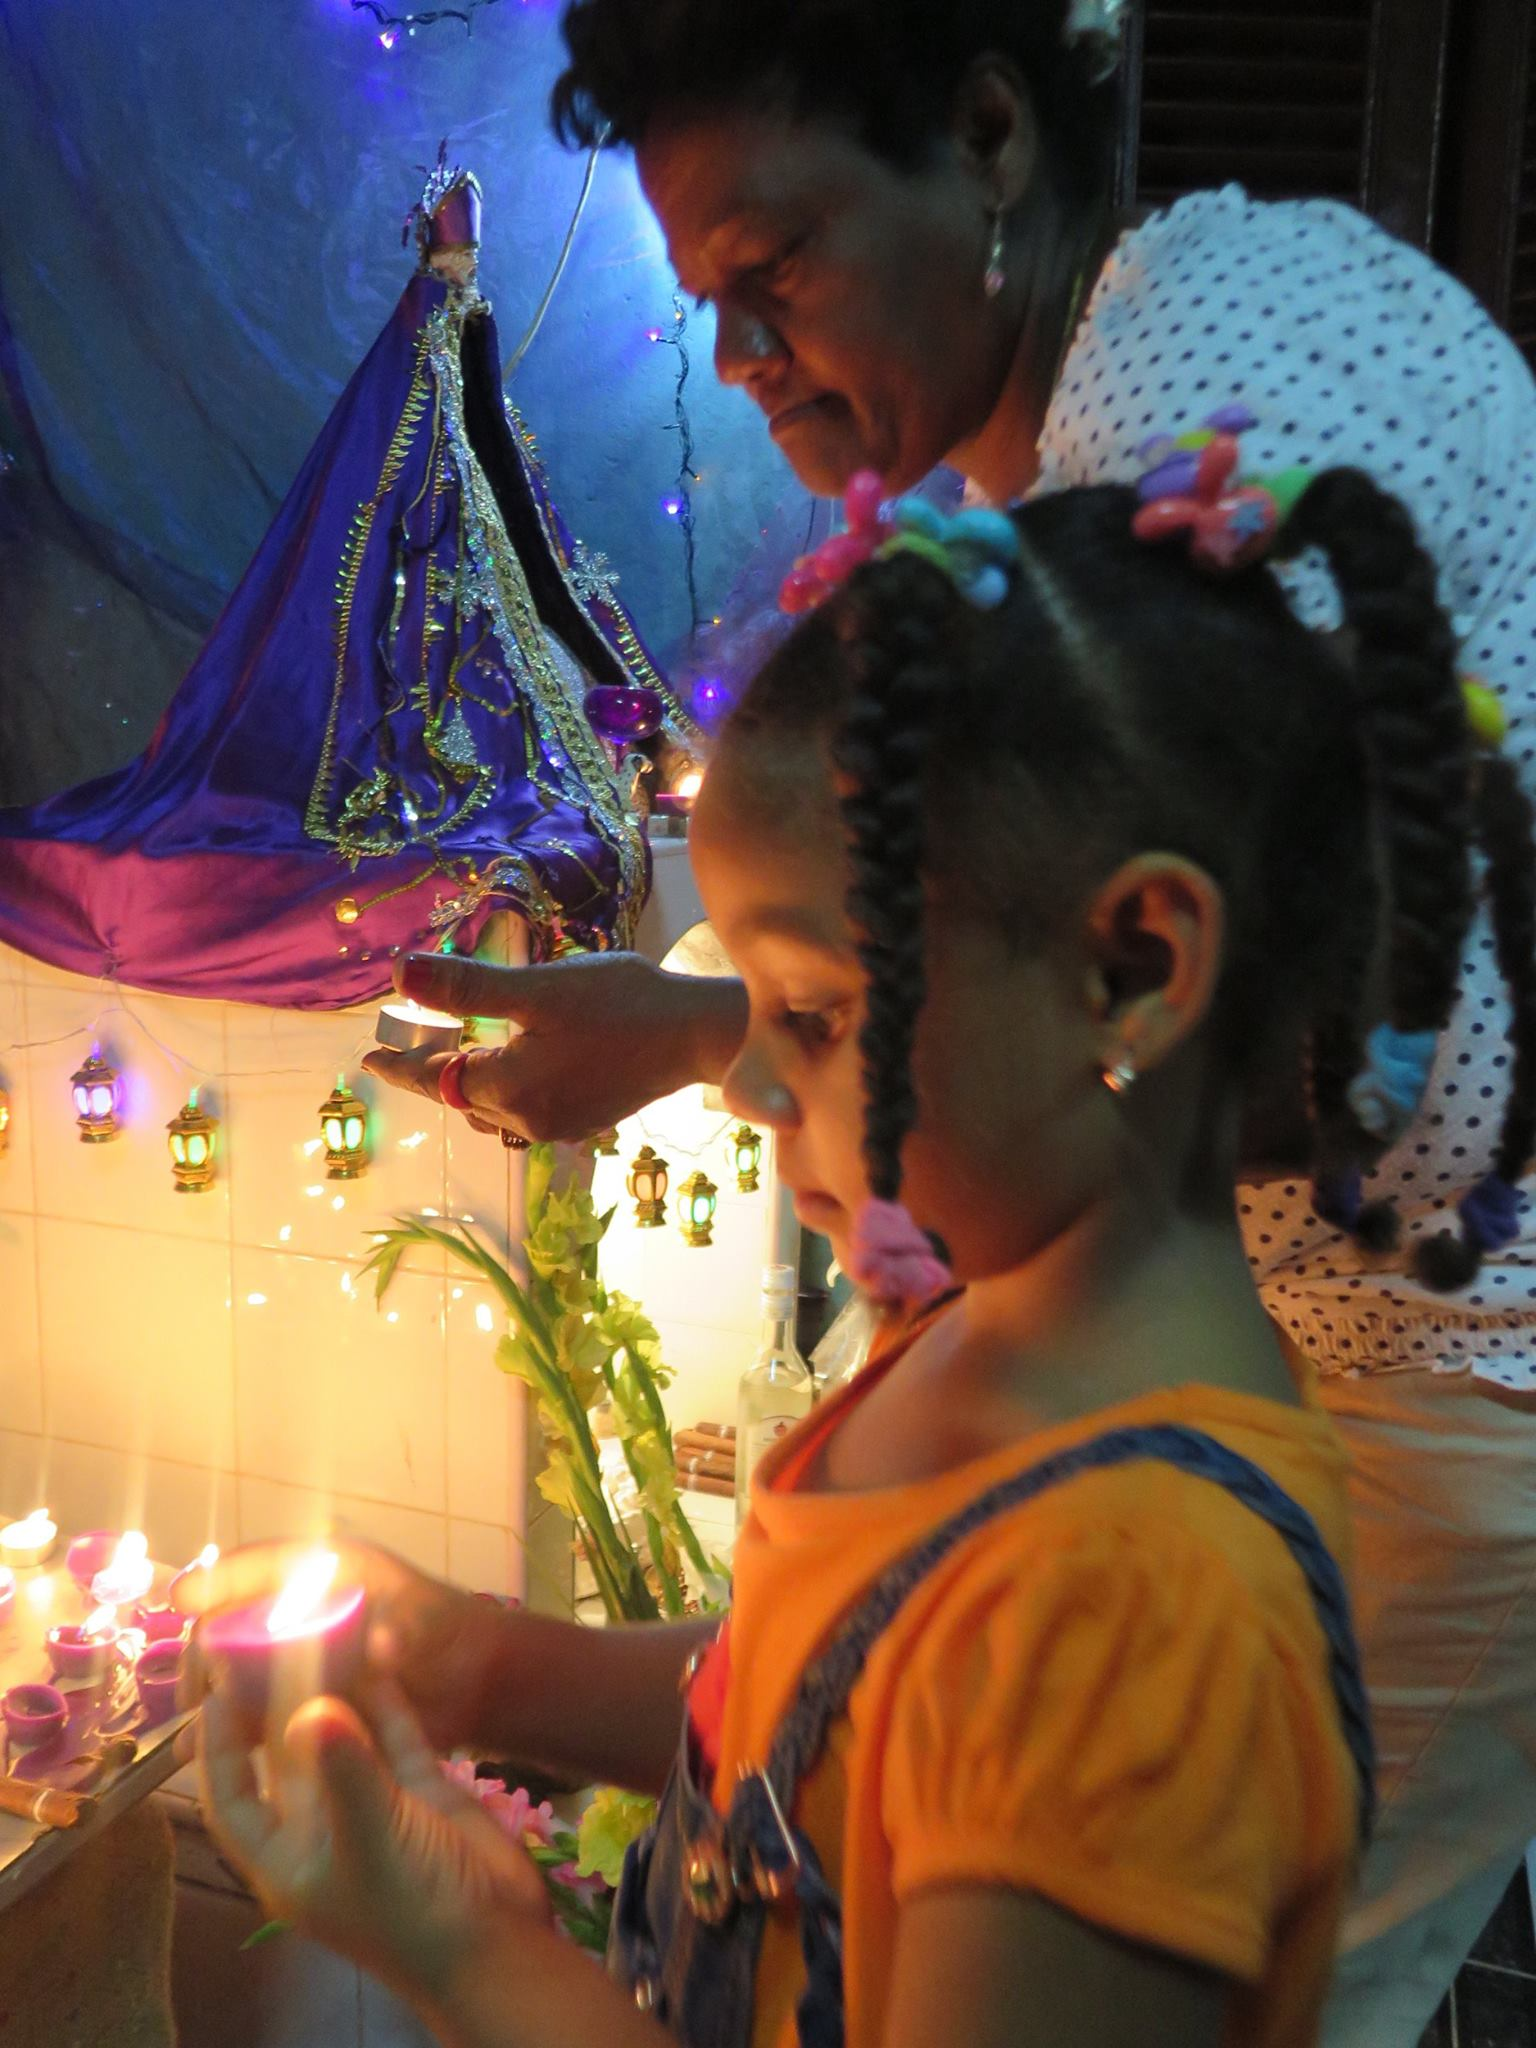 san lazaro, saint lazaro, celebration, worship, religion, santeria, catholicism, catholic, cuba, cuban, cuban streets, cuban celebration, streets of cuba, saint, patron saint of suffering, caribbean island, worshippers, girl, candle, light, lights, family